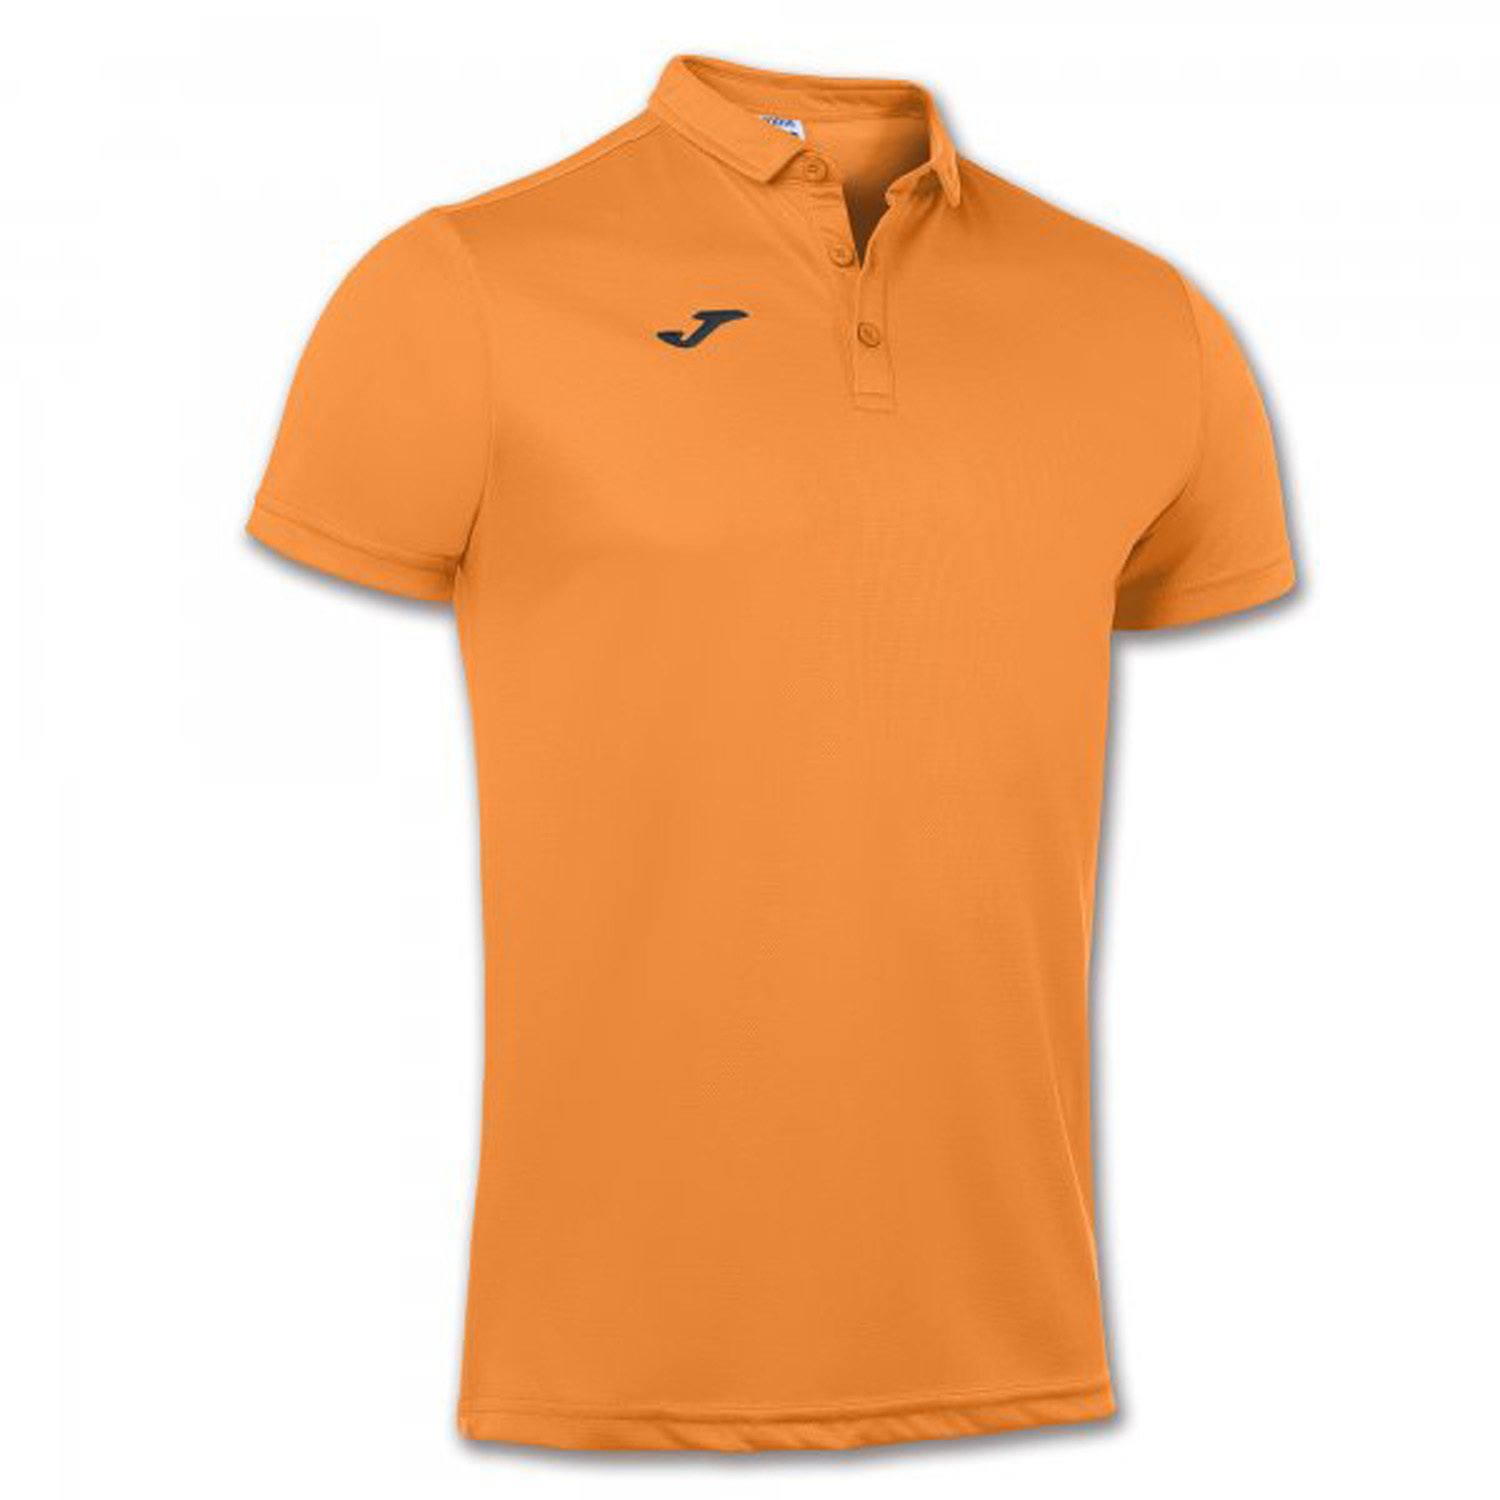 JOMA-POLO-SHIRT-HOBBY-S-S-Uniforms-UOMO